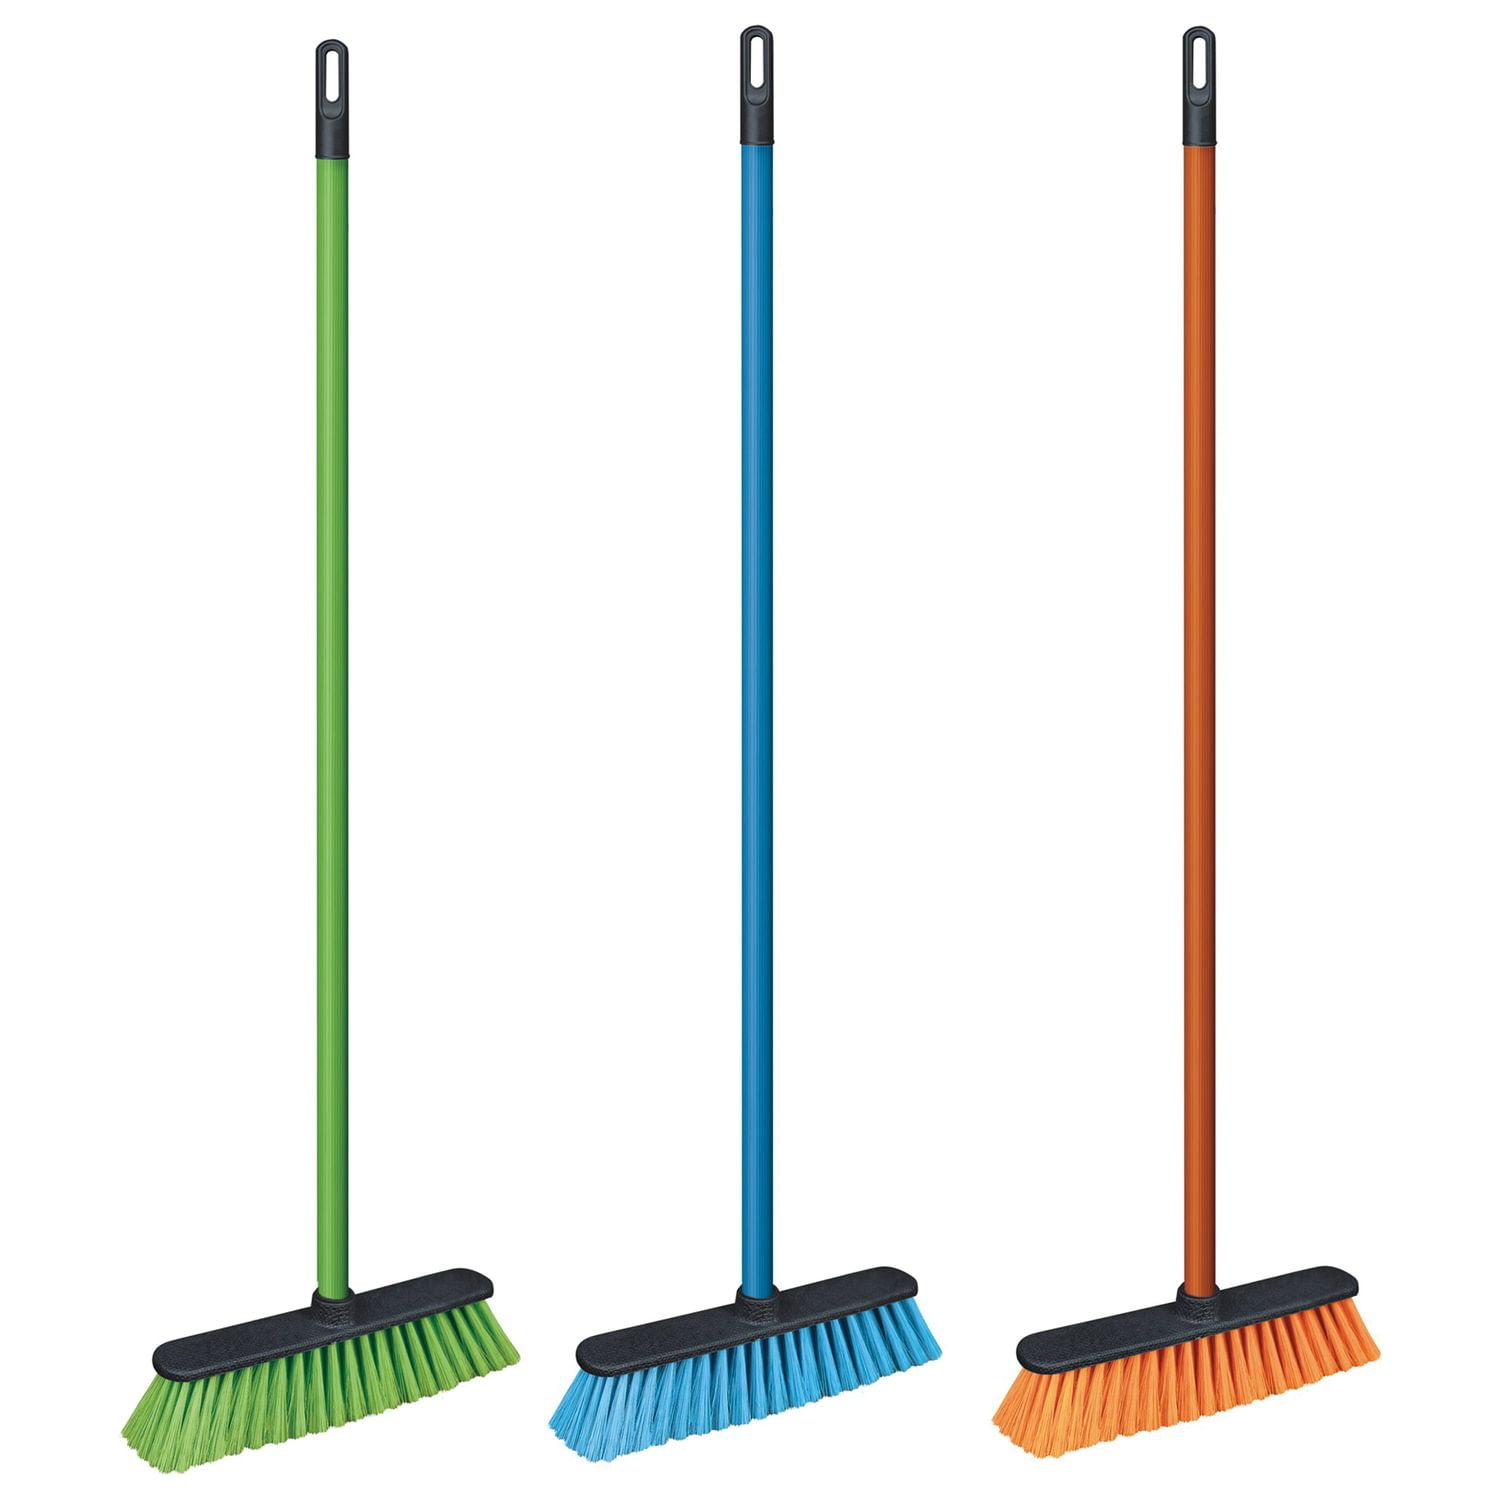 """YORK / Brush """"Centi"""" for cleaning with a handle 110 cm, width 31 cm, bristles 7 cm, plastic, euro thread"""